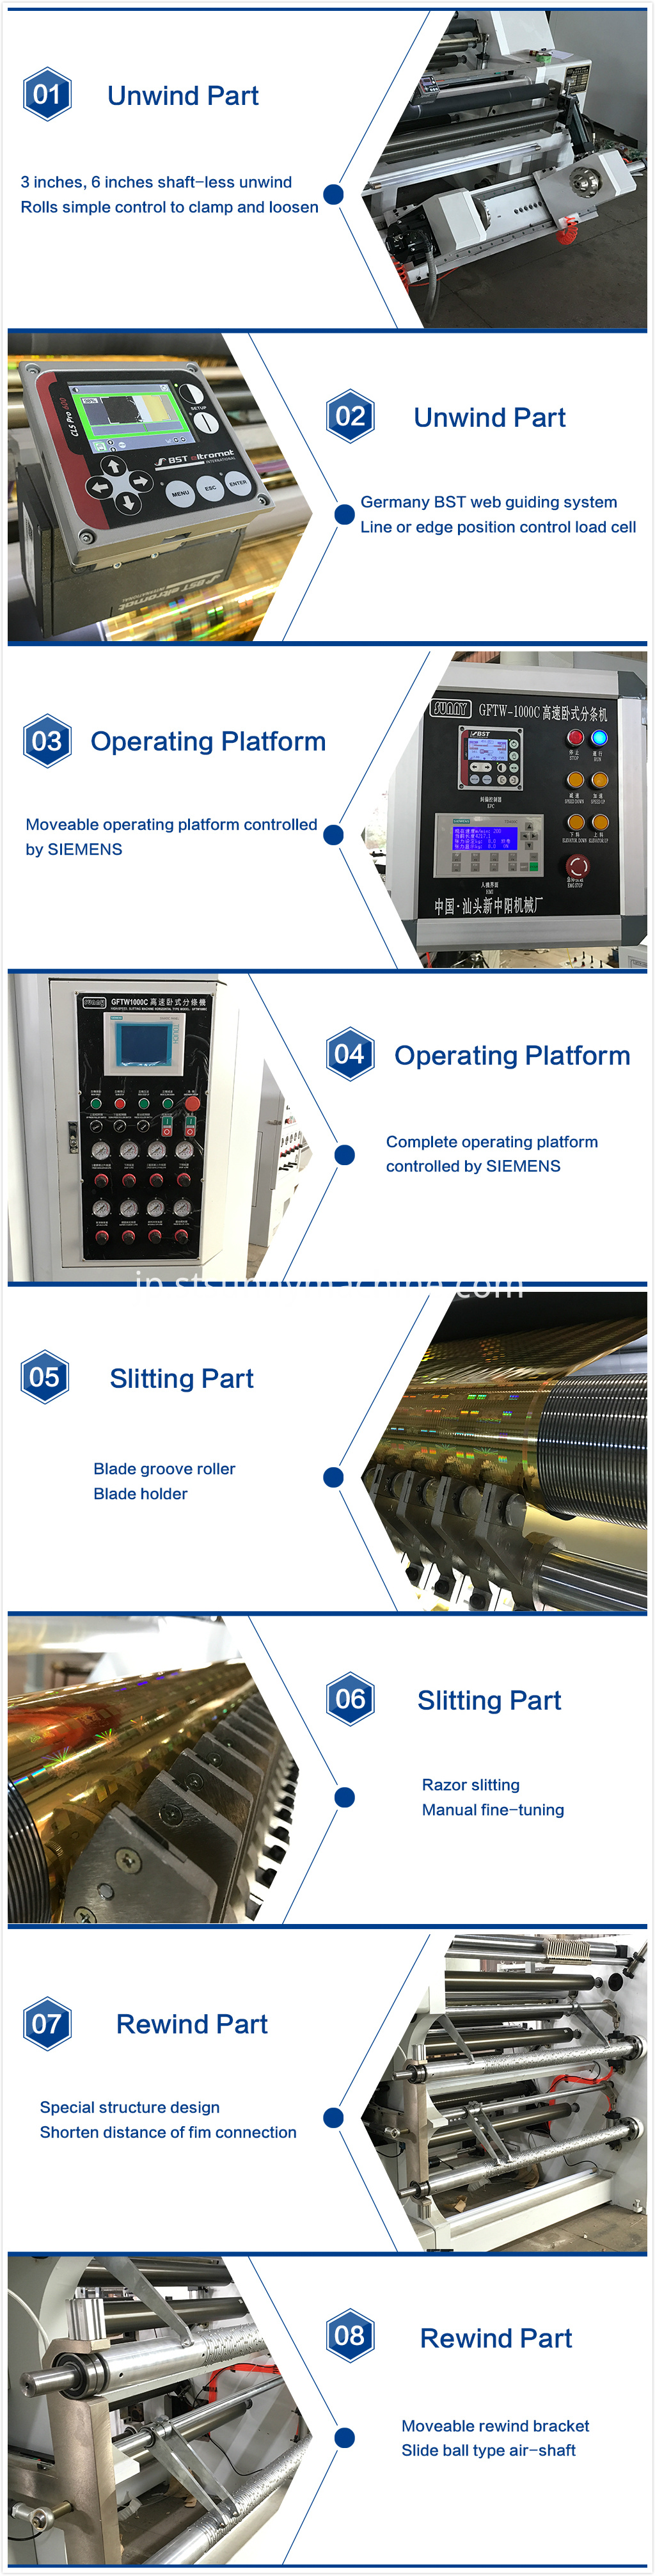 slitter and rewinder machine